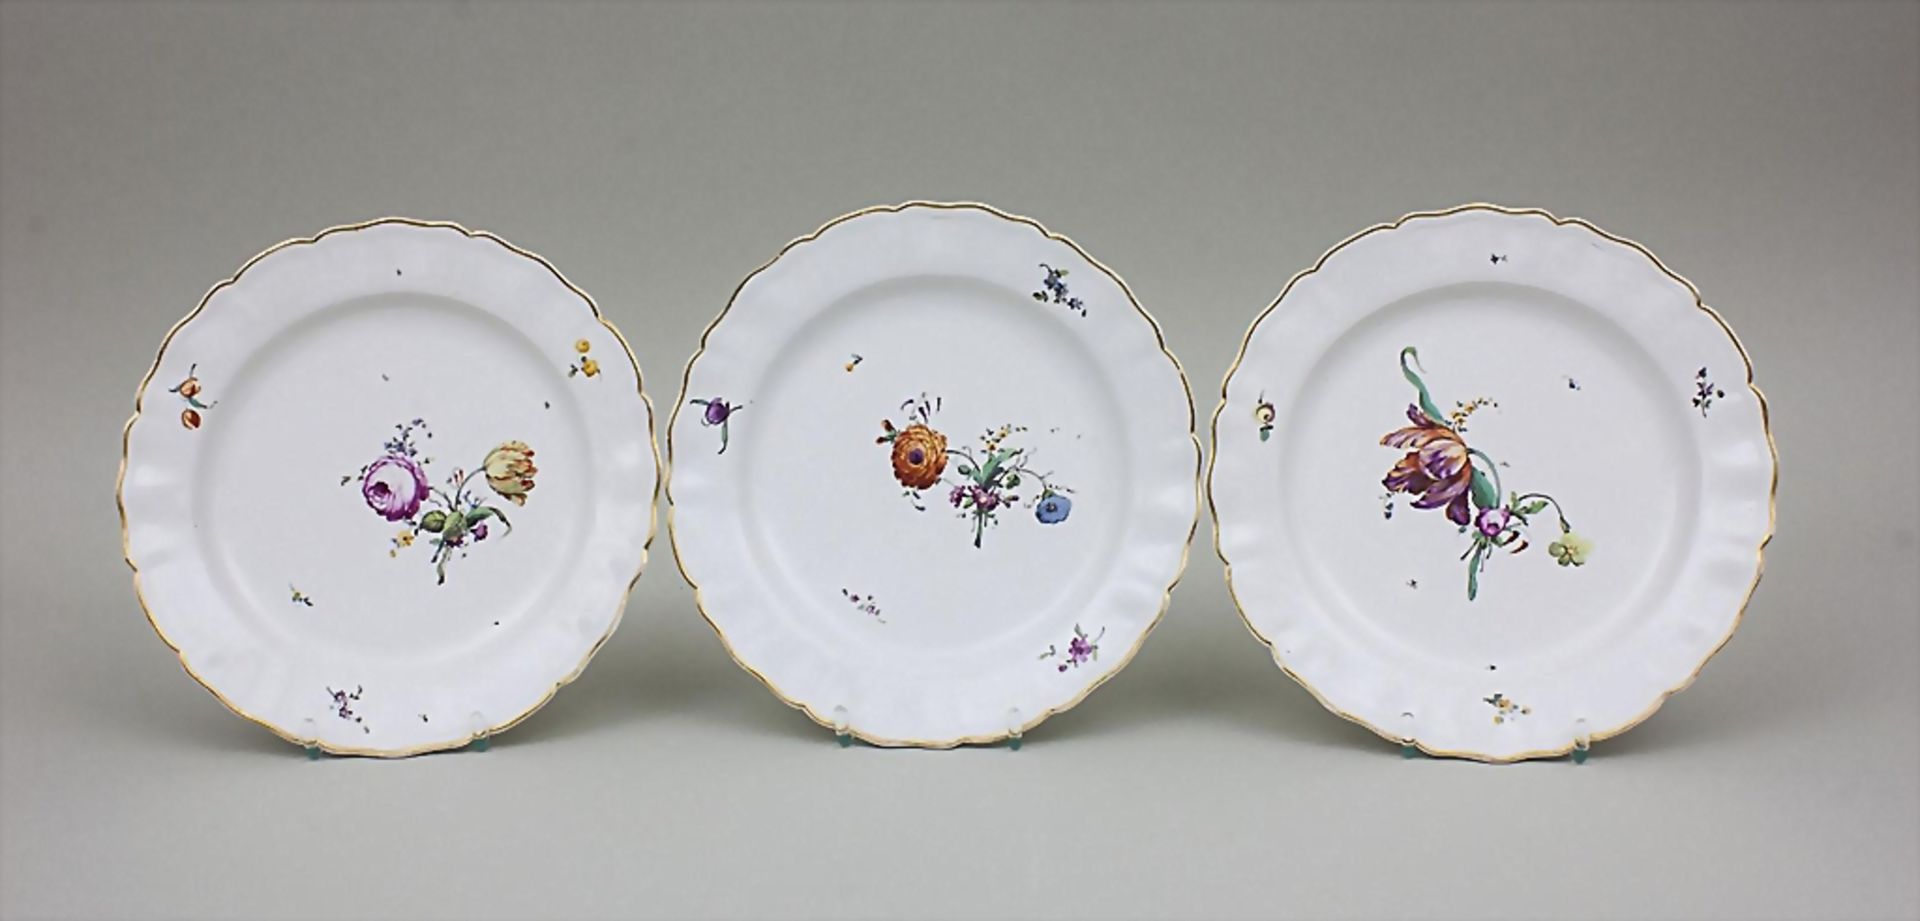 6 Teller mit Blumendekor / A Set Of 6 Dinner Plates With Flowers, Churfürstl. Mainzische Manufaktur, - Bild 3 aus 4